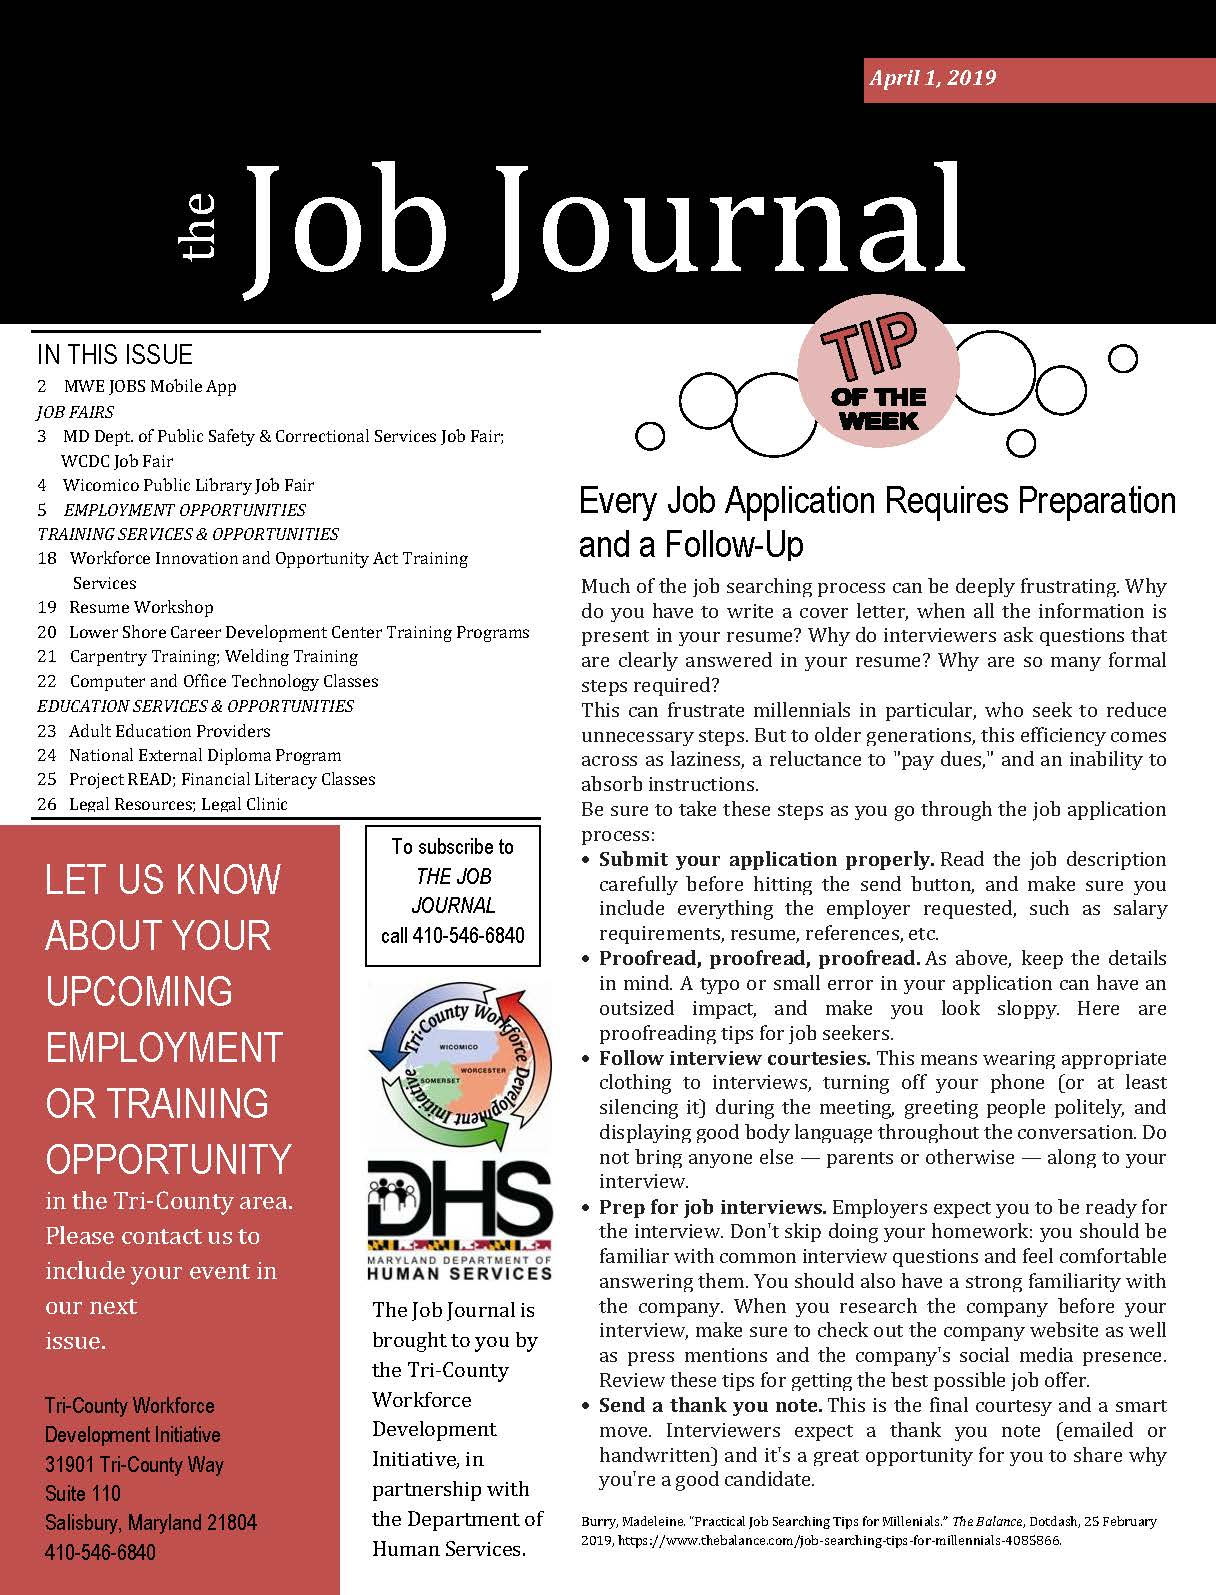 Cover page of the Job Journal 04012019